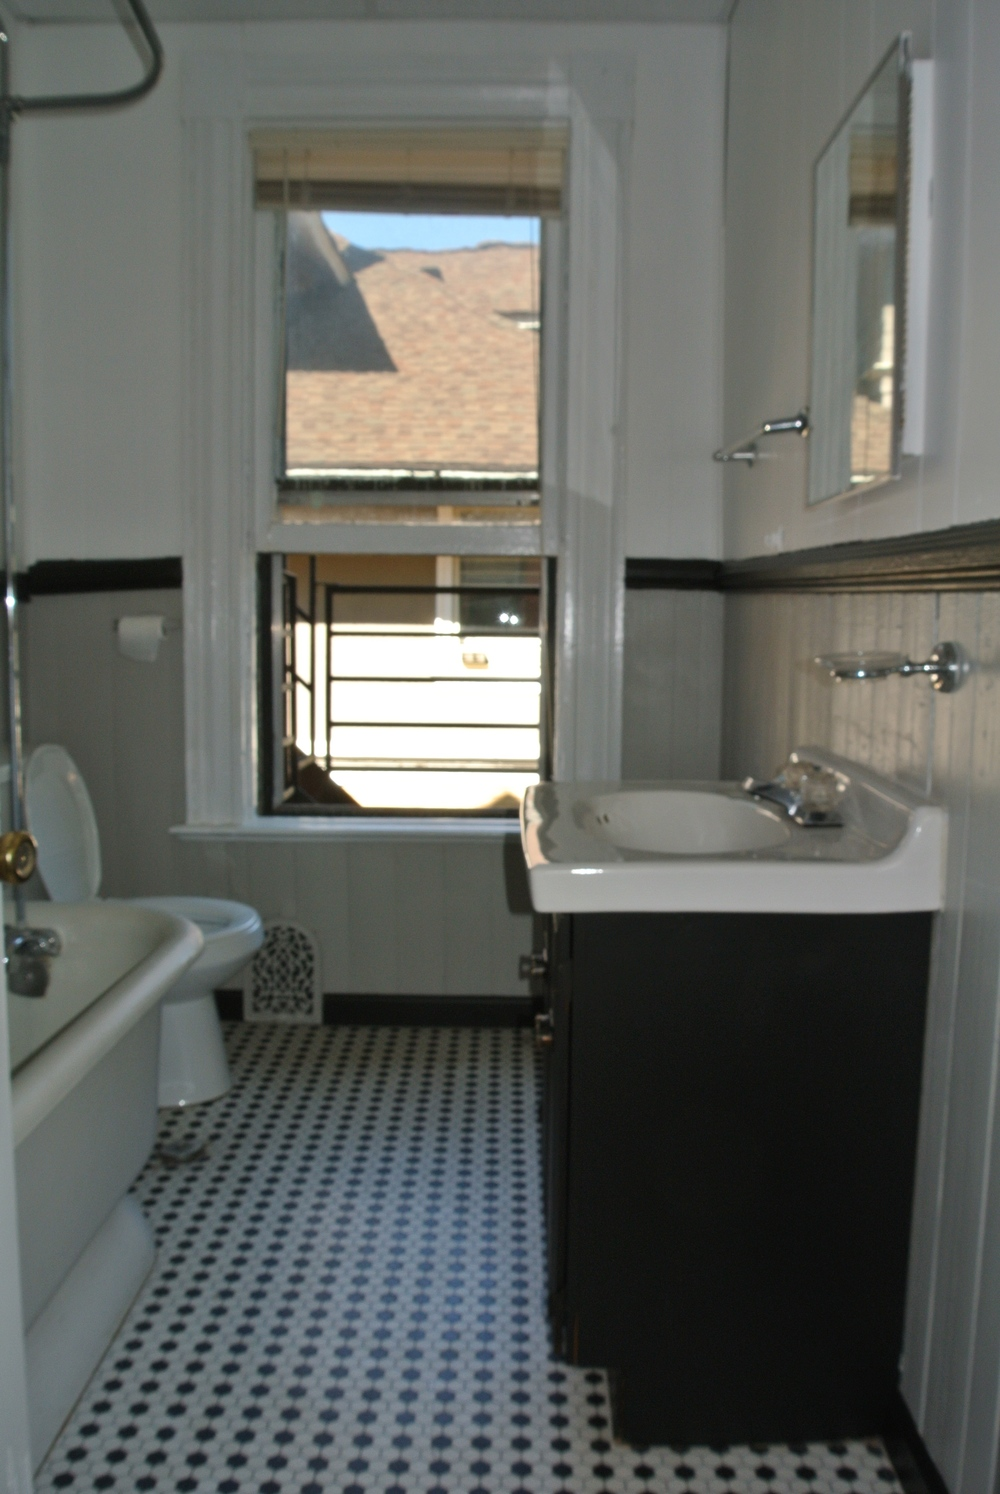 22StrathallanPk-Apt3-Bathroom2.jpg